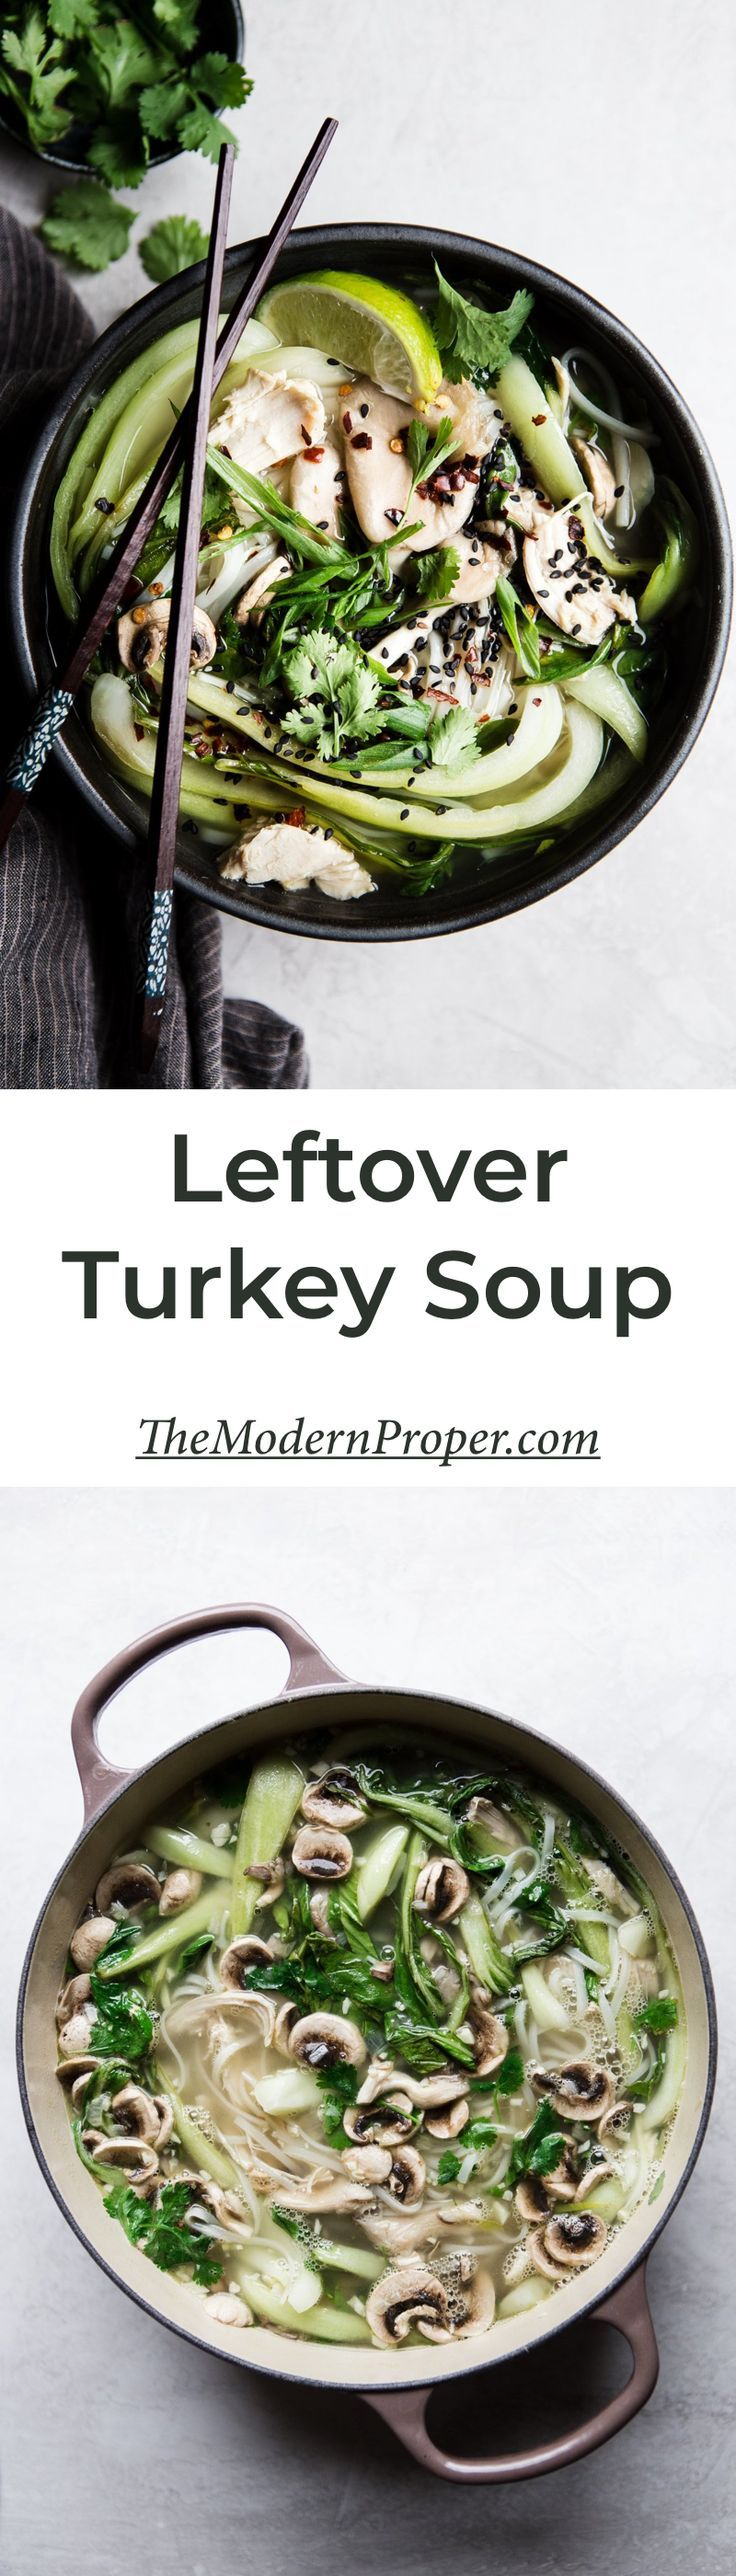 797 best soup images on Pinterest | Soup recipes, Soap recipes and ...